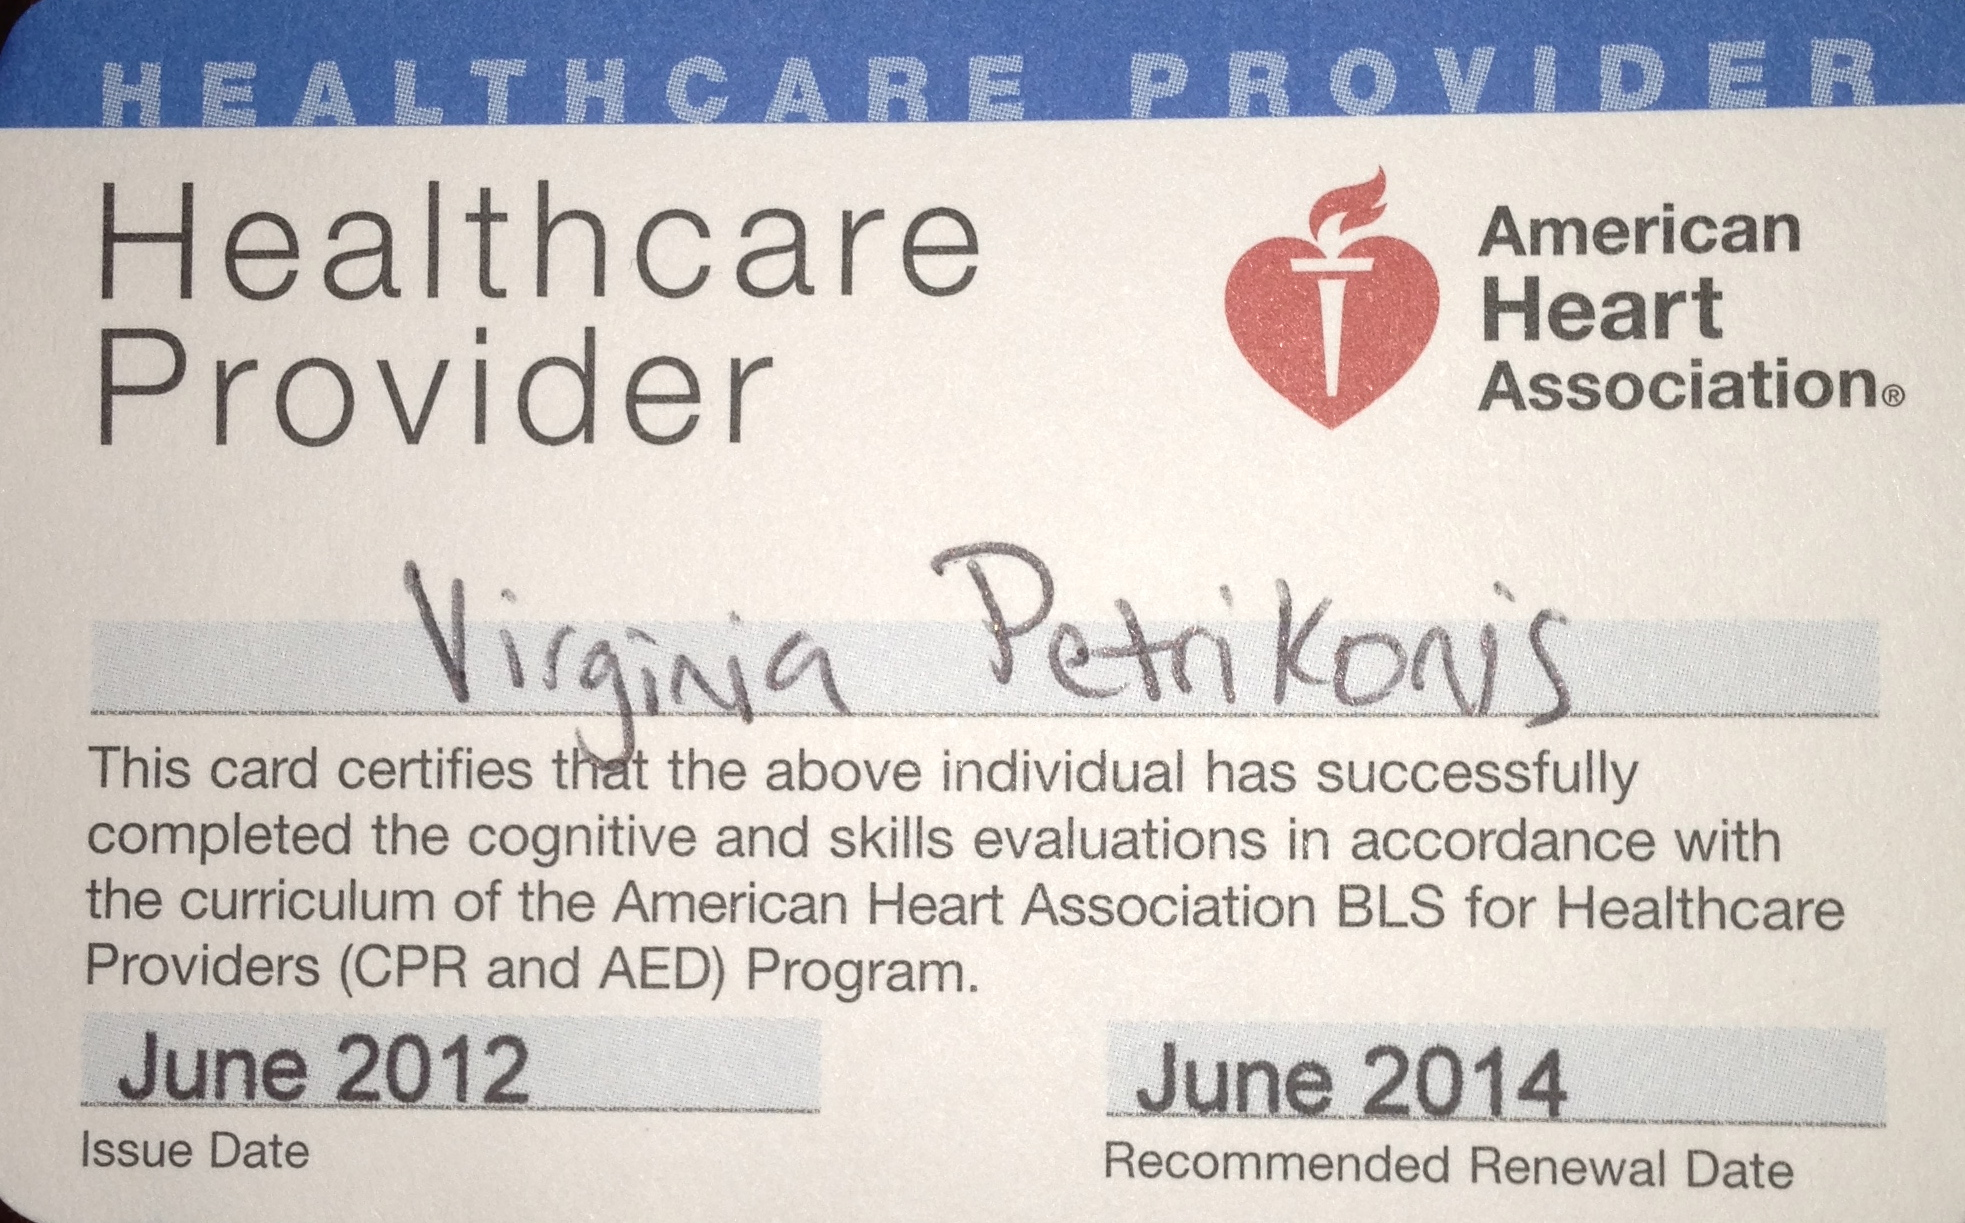 Licensure certifications virginia petrikonis med ba bsn rn blsphoto xflitez Gallery